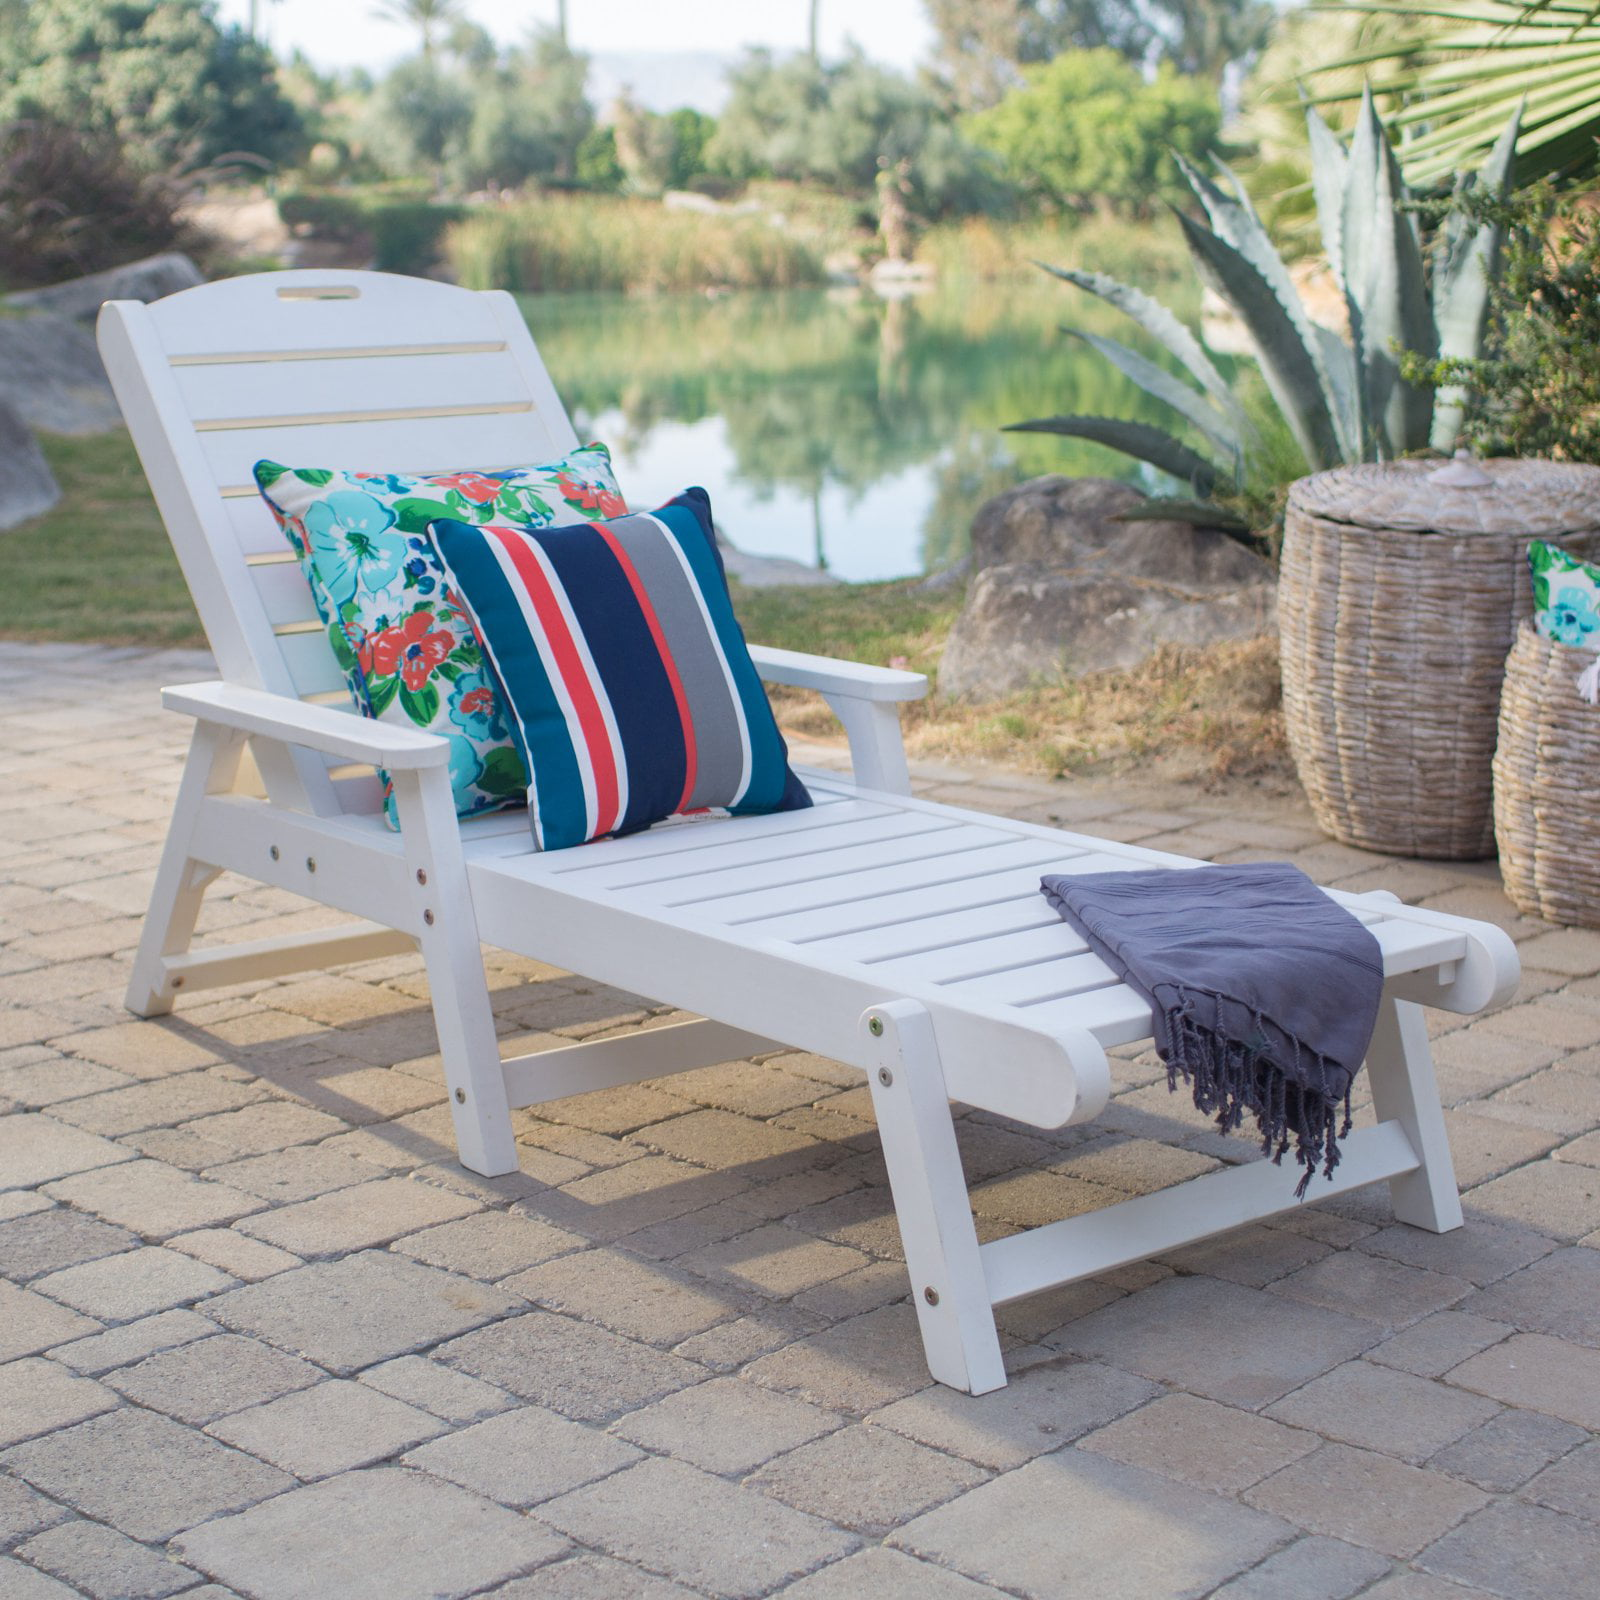 Belham Living Seacrest Cottage All Weather Resin Chaise Lounge Chair